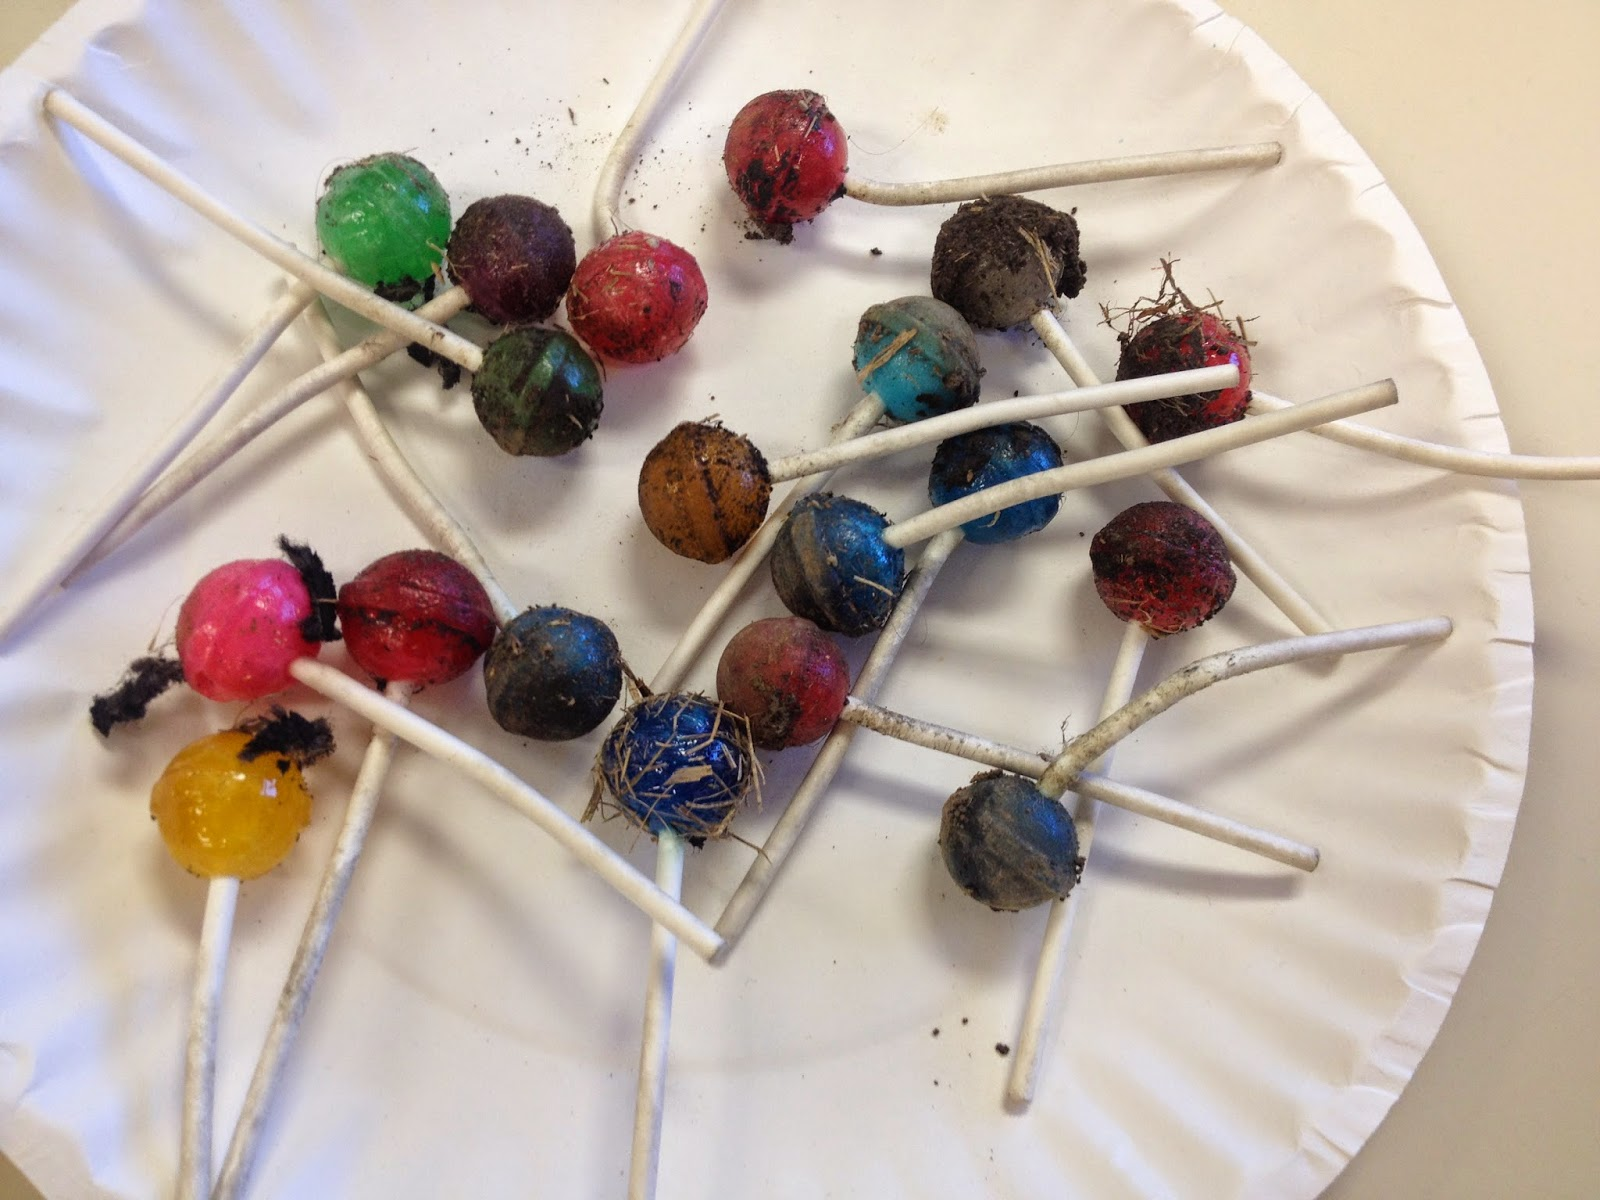 Guest blog post today from Faith at Kindergarten Faith all about Kindergarten Science Fun!